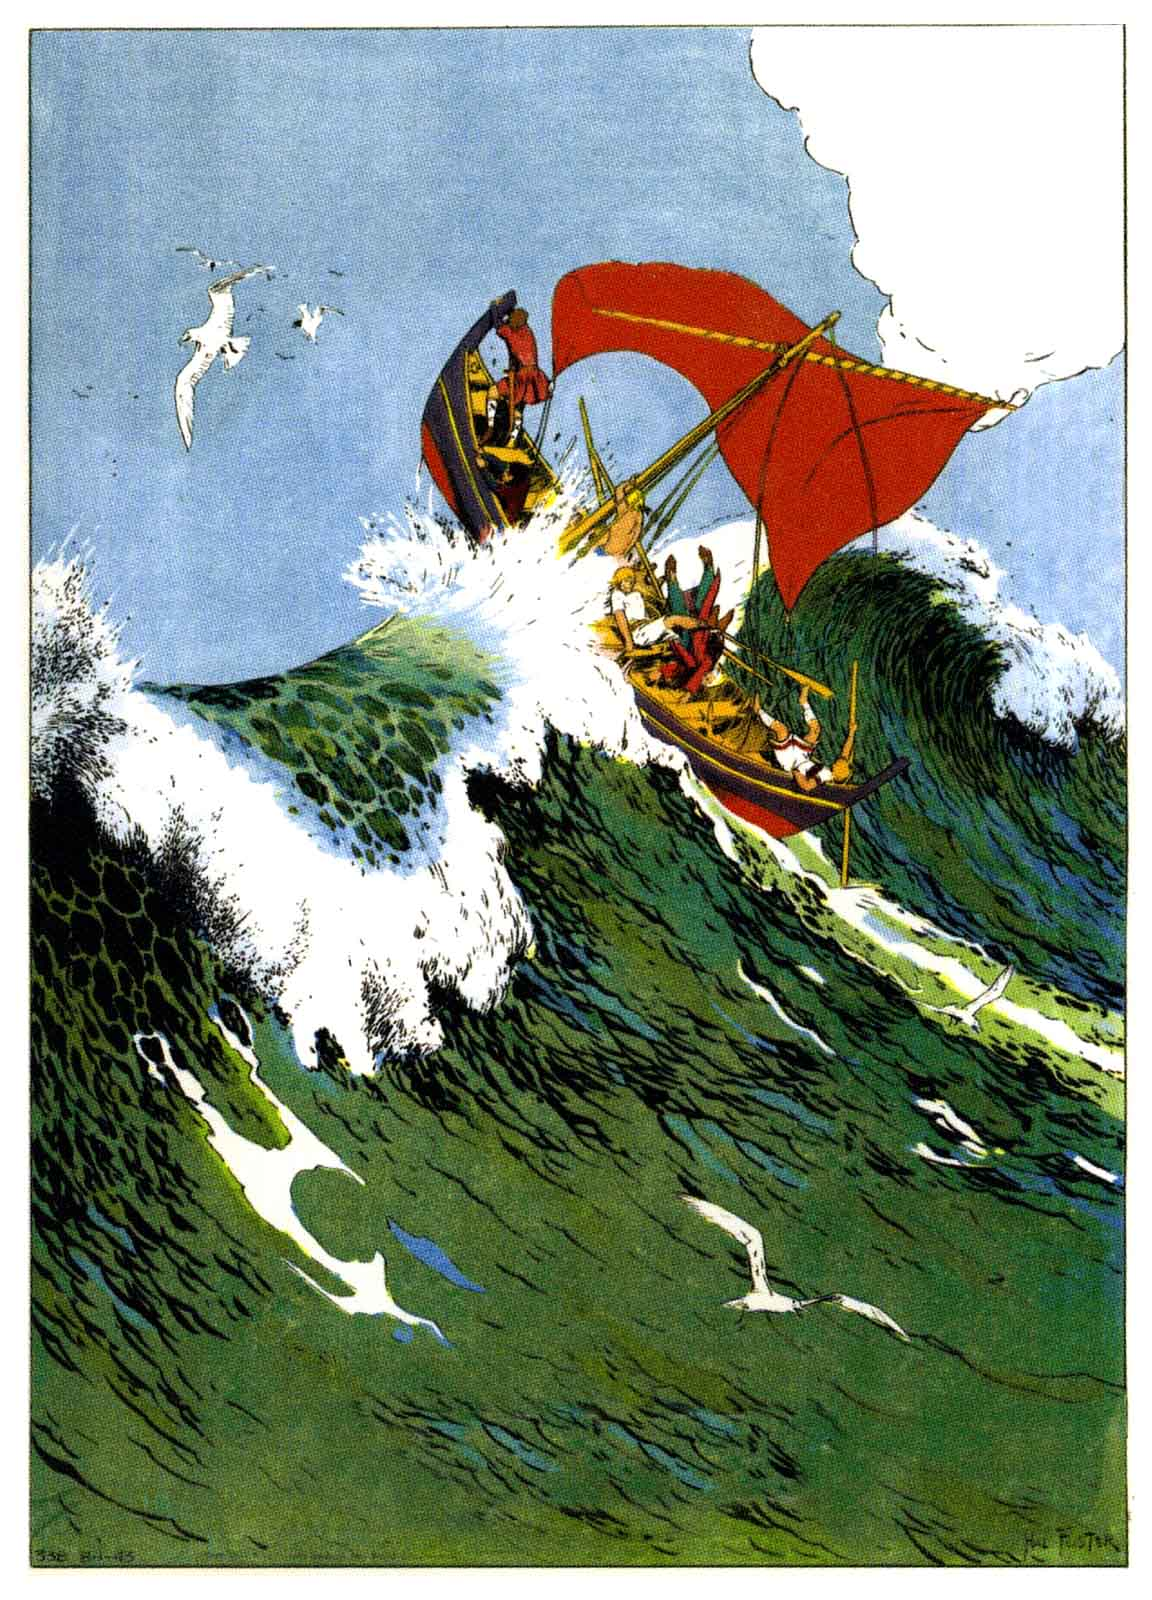 Prince Valiant Planches 1942 -1943